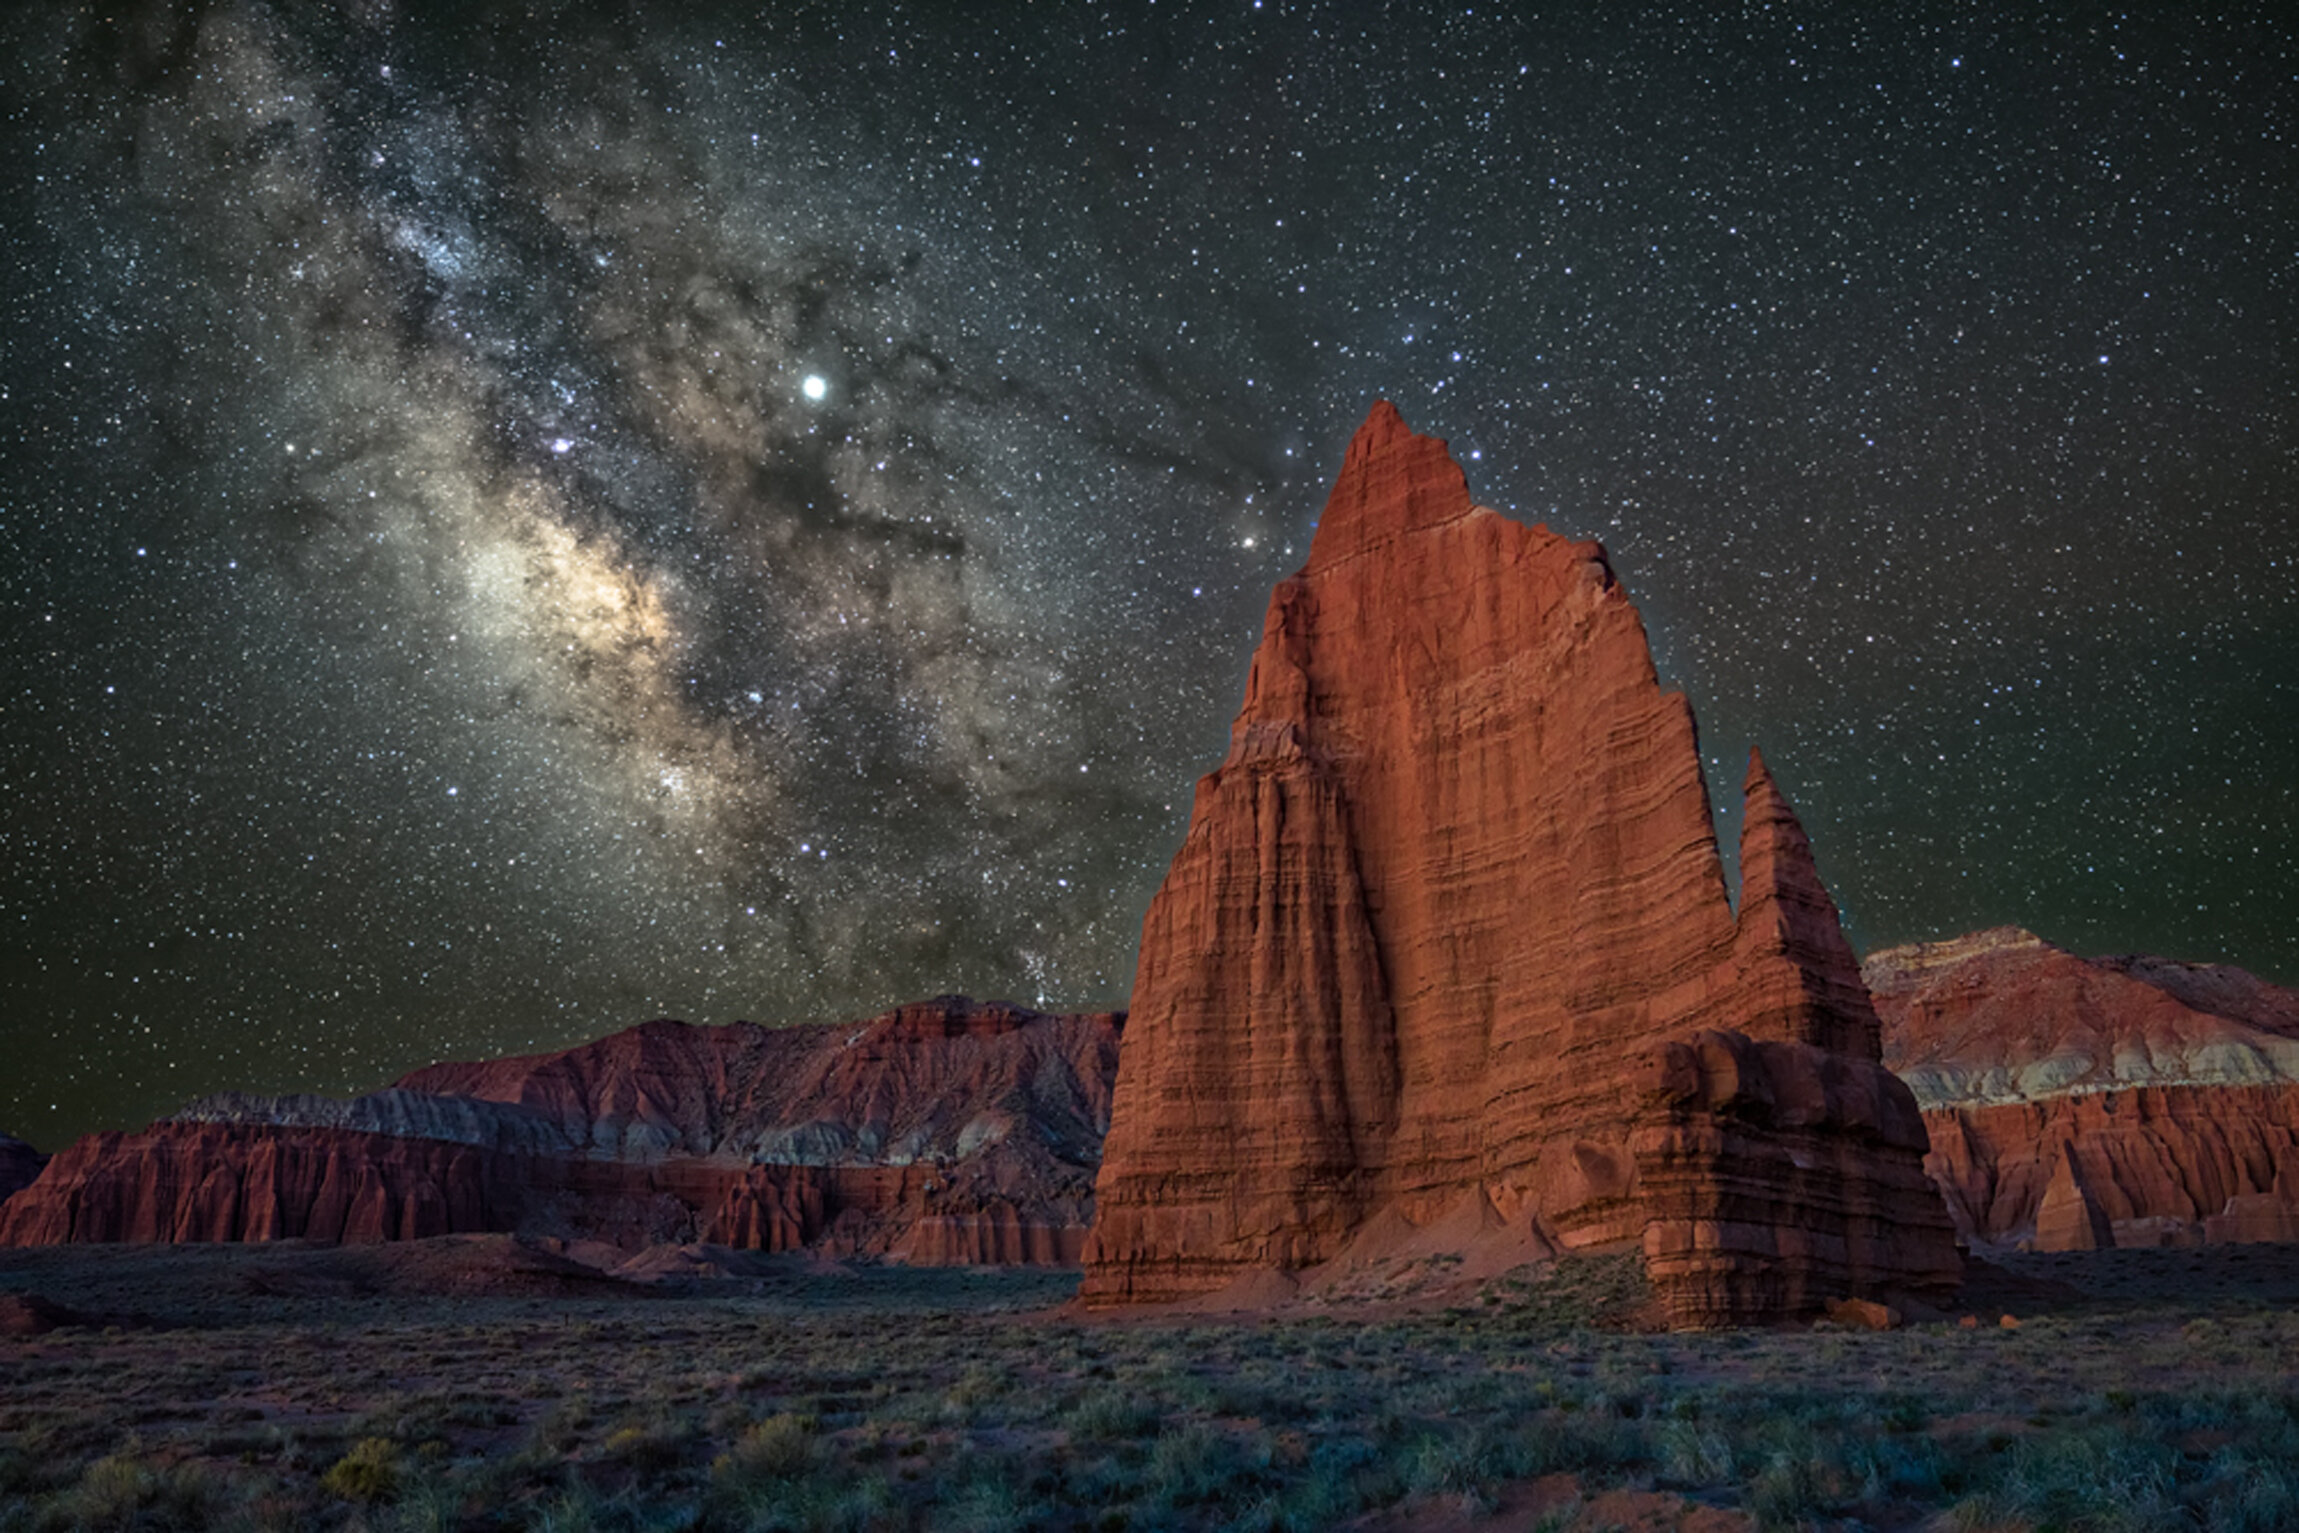 AN ARTIST IN RESIDENCE AT CAPITOL REEF NATIONAL PARK - When I decided to pursue a career in landscape and nature photography I already had in mind to combine my biology backgroundClick here to read more…